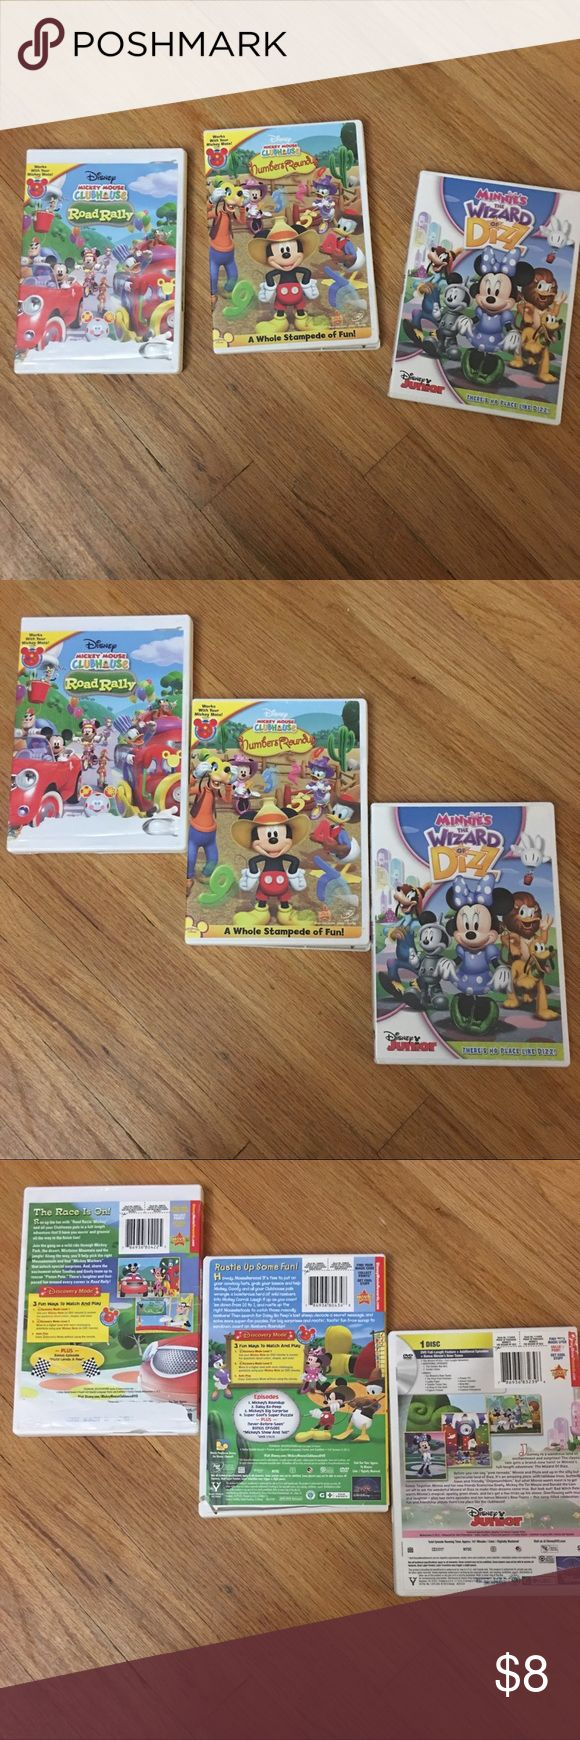 Mickey Mouse Clubhouse DVD's 3-DVD's Road Rally, Numbers Round up, and Wizard of Diz Other